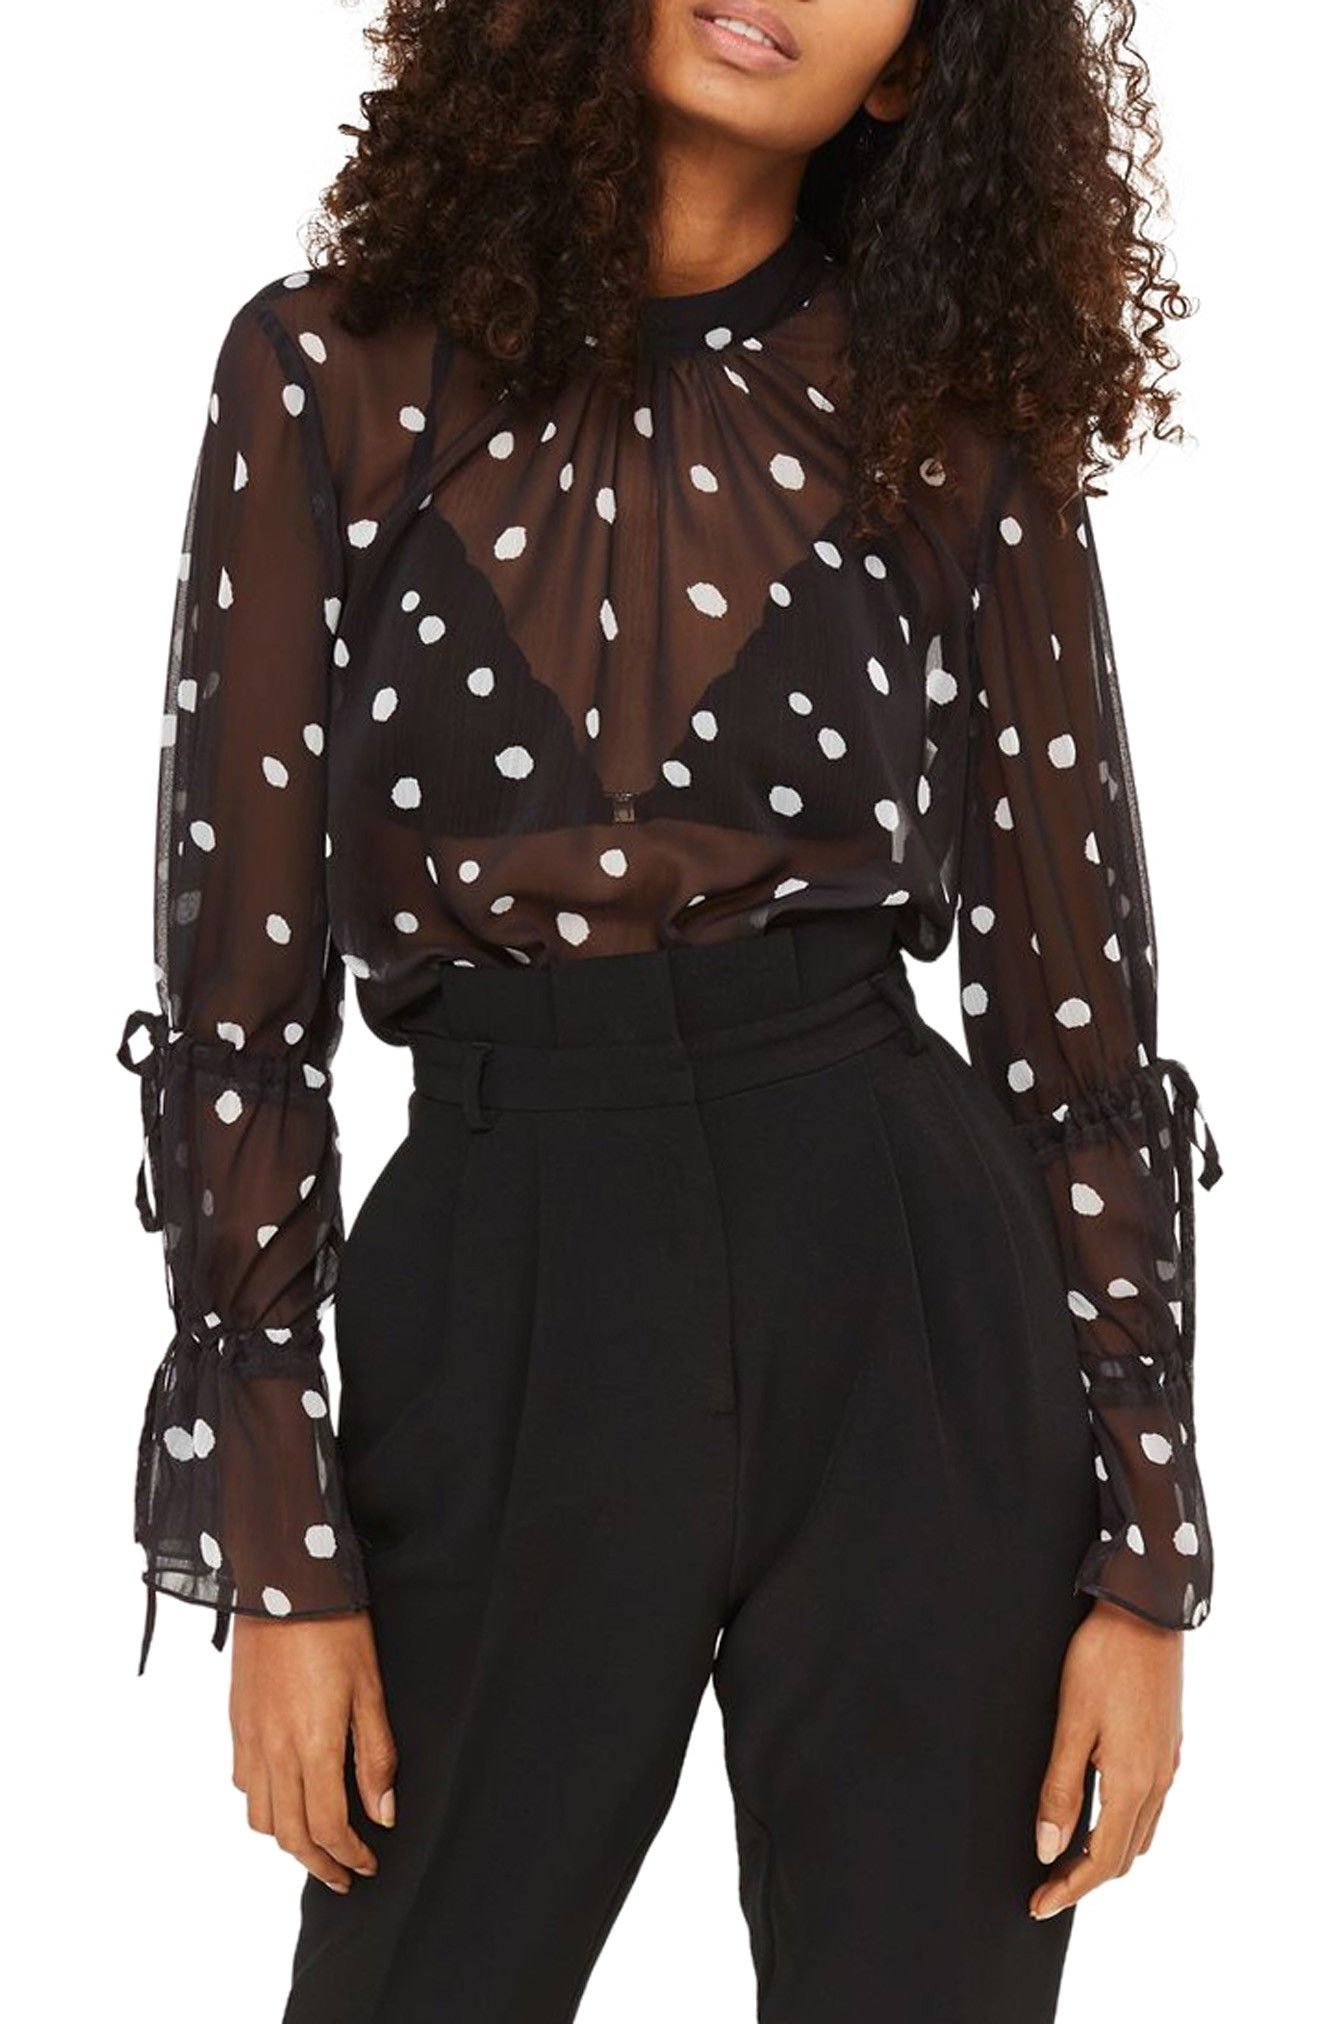 I love the sleeves and polka dots on this sheer top by Topshop that's part of the Nordstrom Anniversary Sale 2017! // http://rstyle.me/n/cqeti8cb5bp